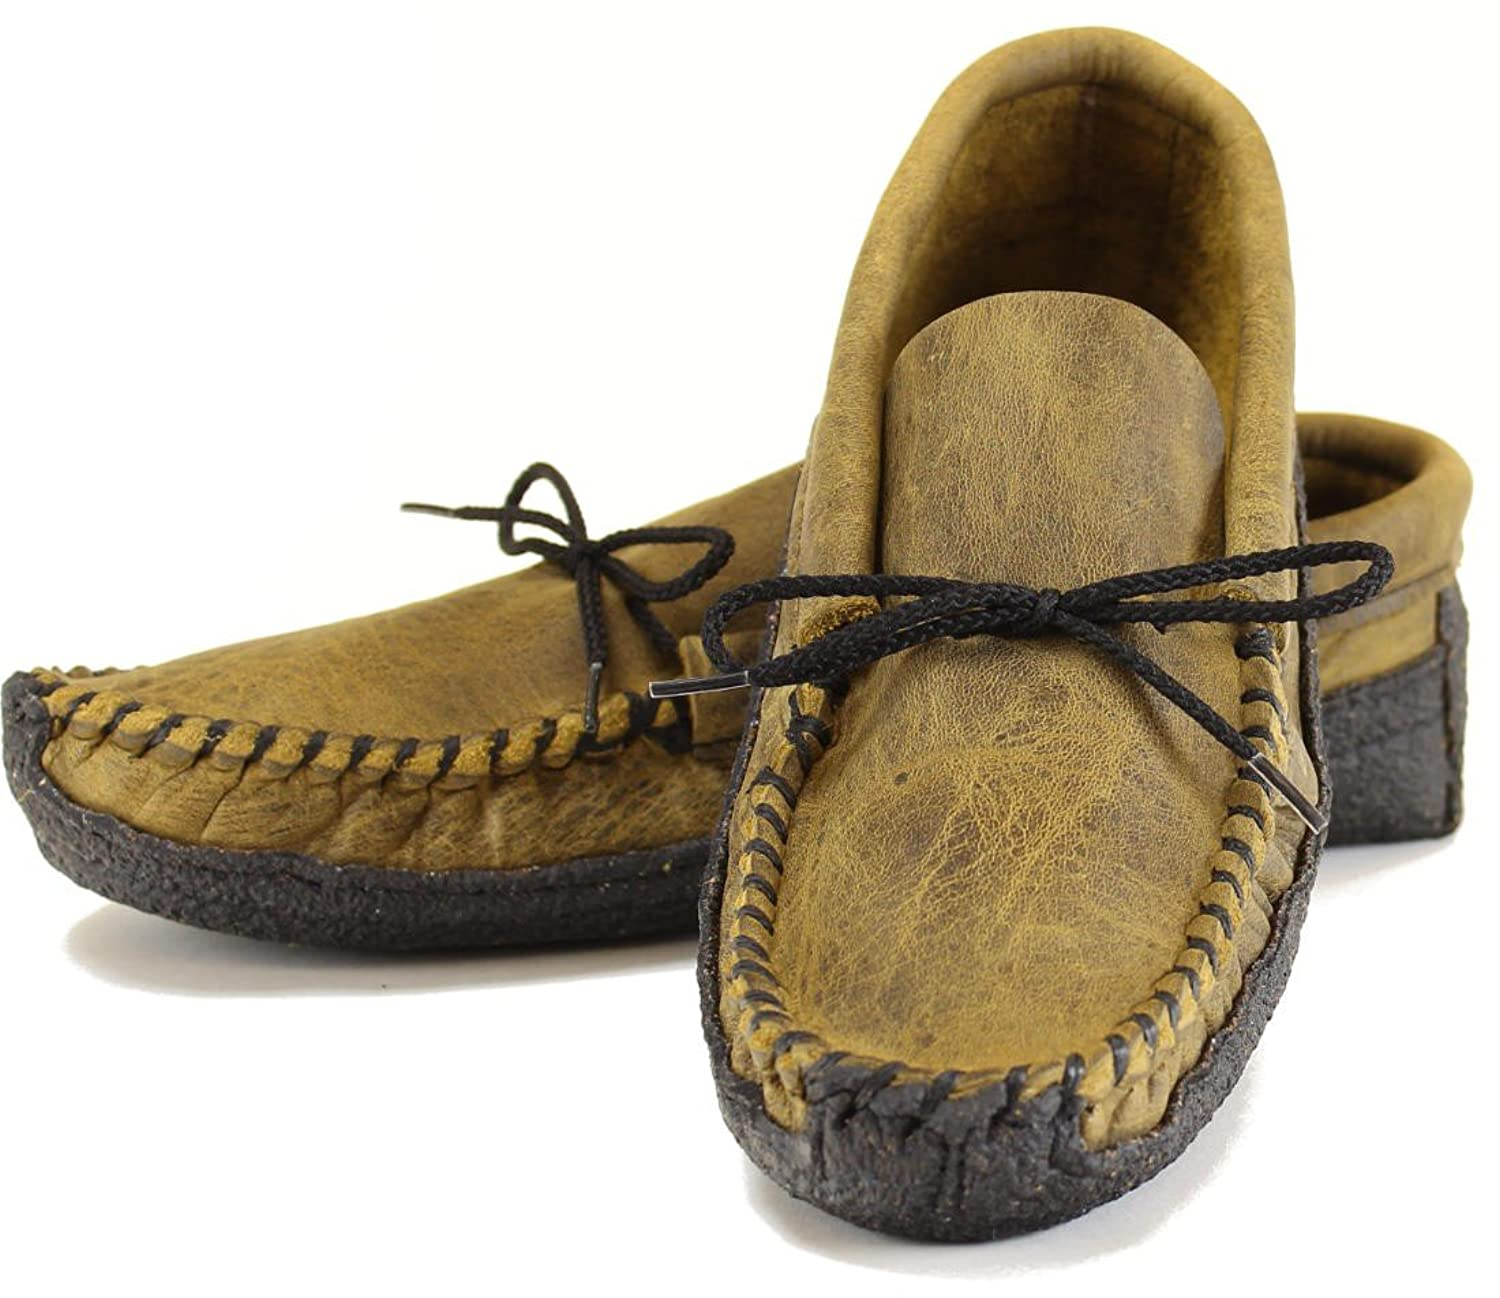 Men's Cota ''Antique Brass'' Moccasin